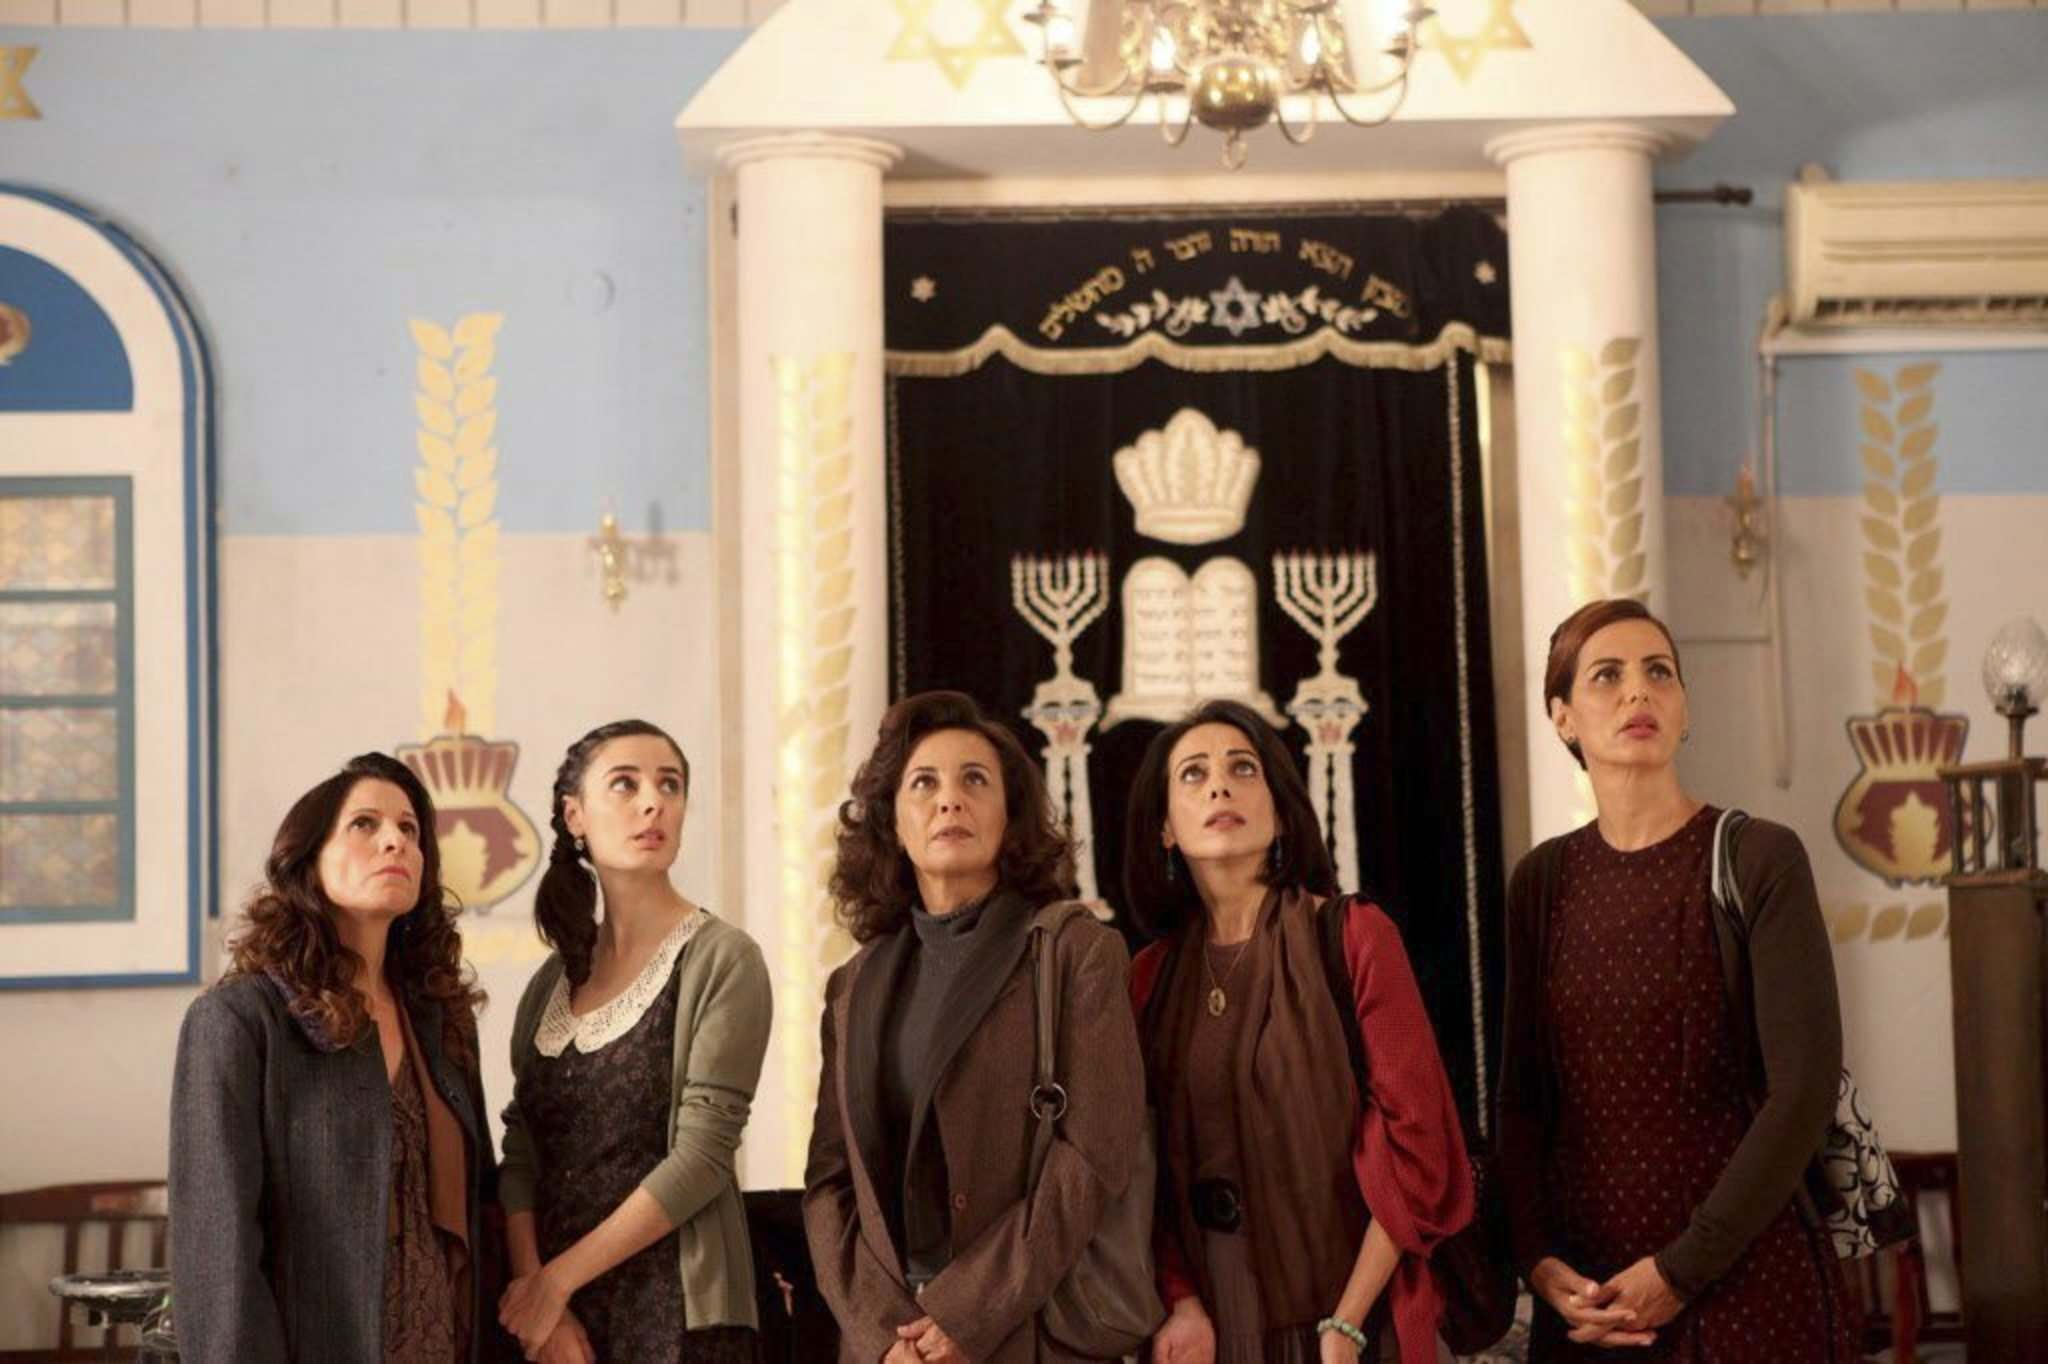 Menemsha Films</p><p>The wives in The Women's Balcony stage a strike, walking out on their husbands until the issue of a collapsed balcony at synagogue is resolved.</p></p>